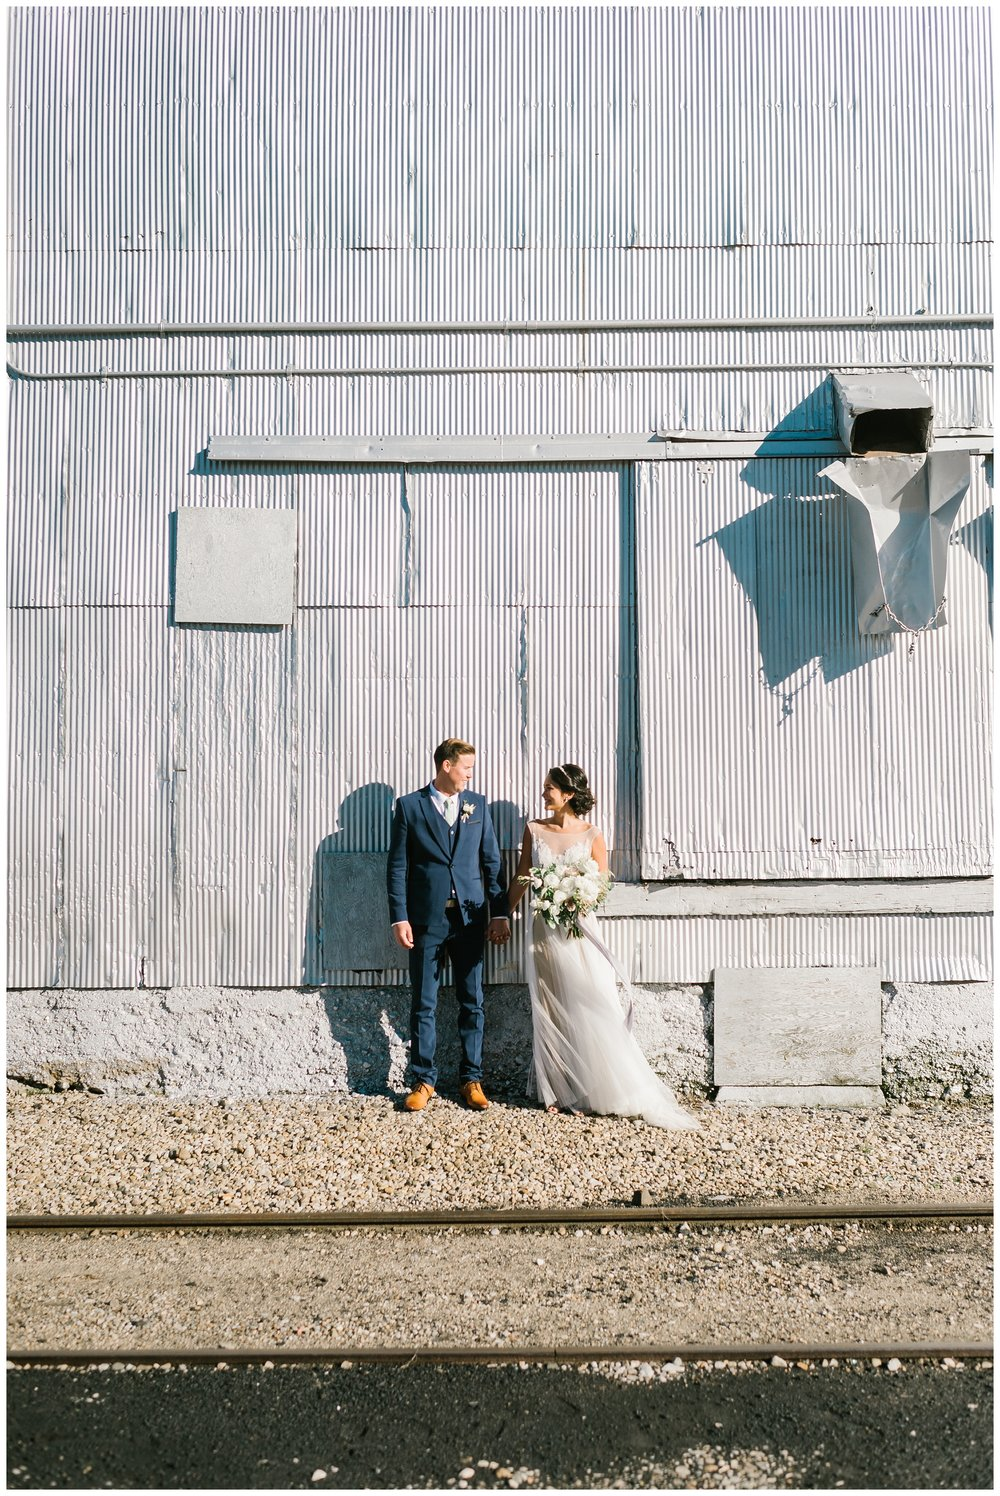 Rebecca_Shehorn_Photography_Indianapolis_Wedding_Photographer_7916.jpg